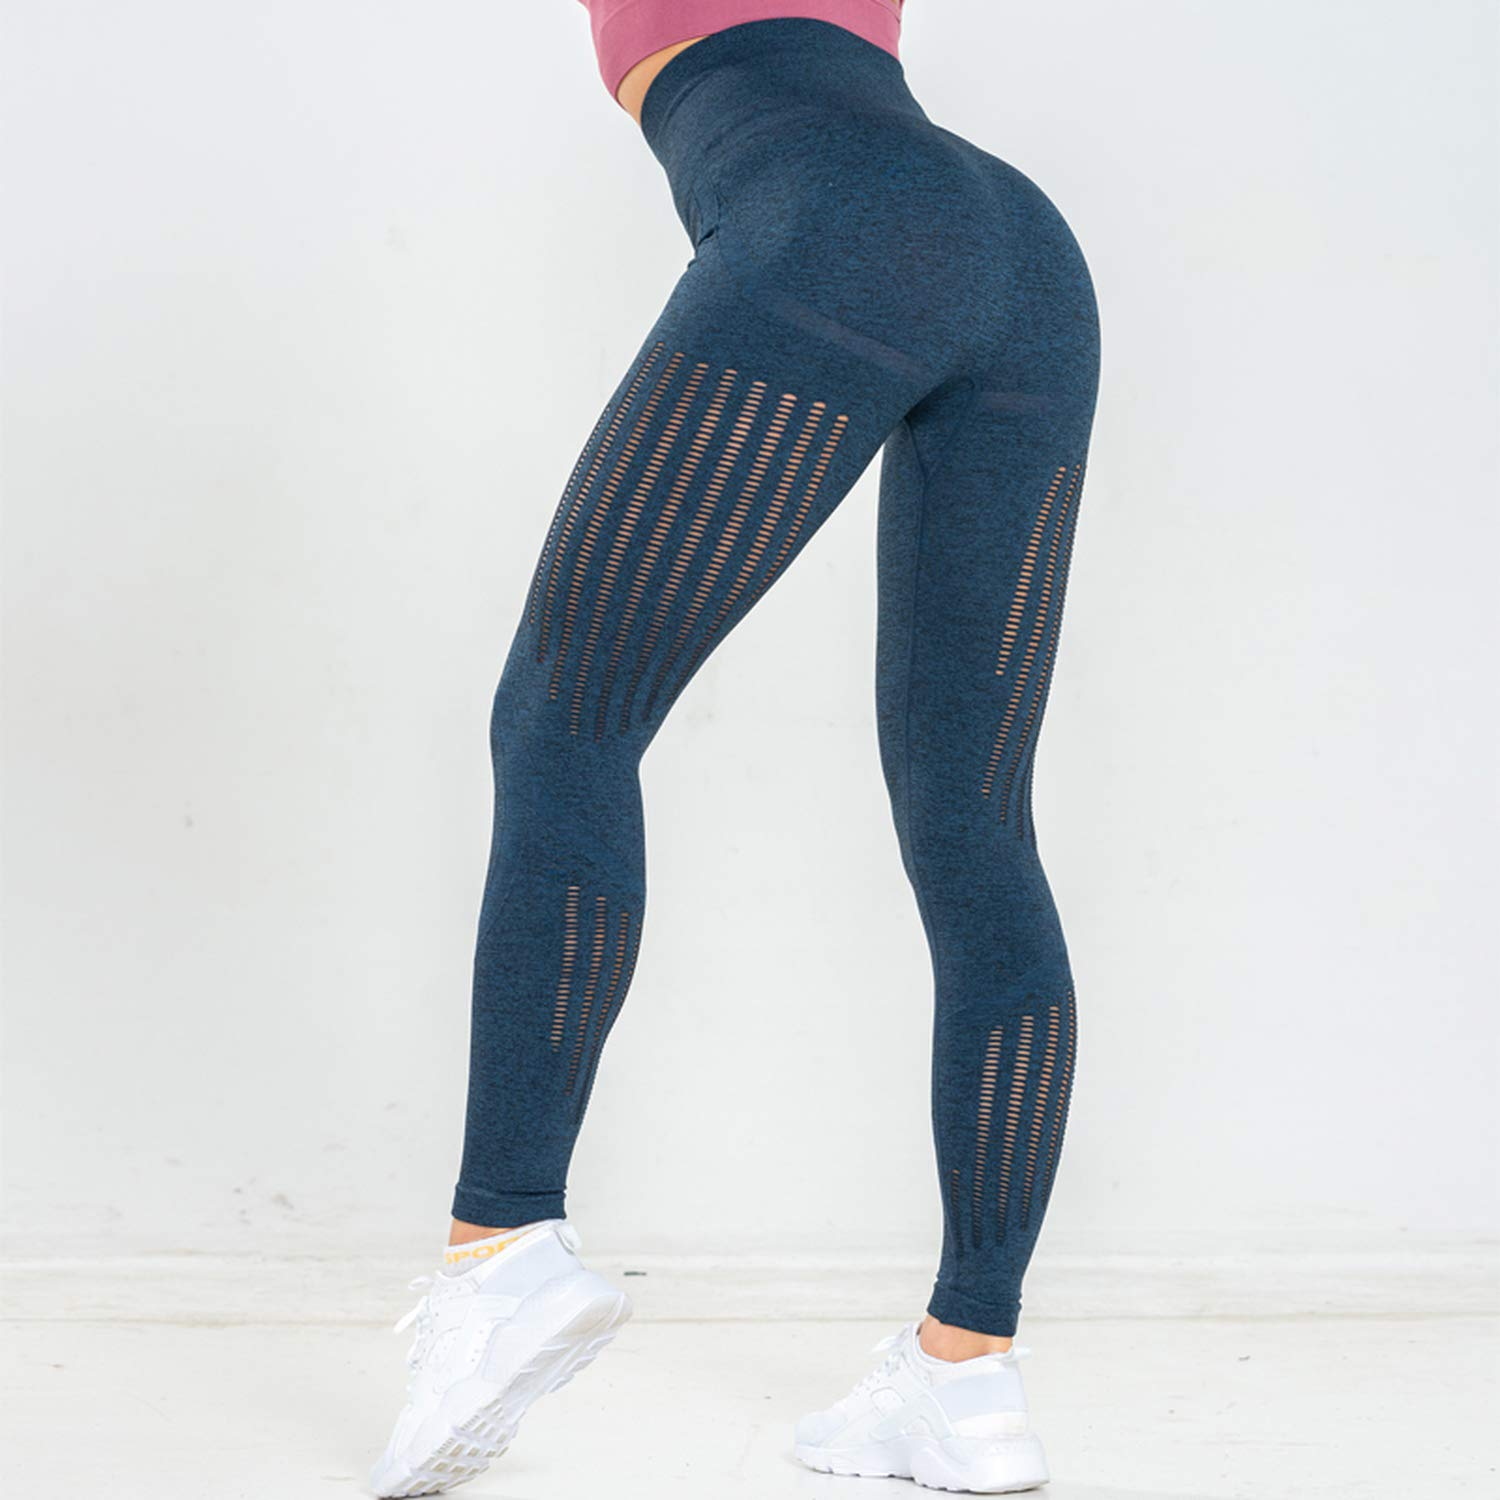 Amazon.com: Women Seamless Leggings Yoga Pants High Waist ...